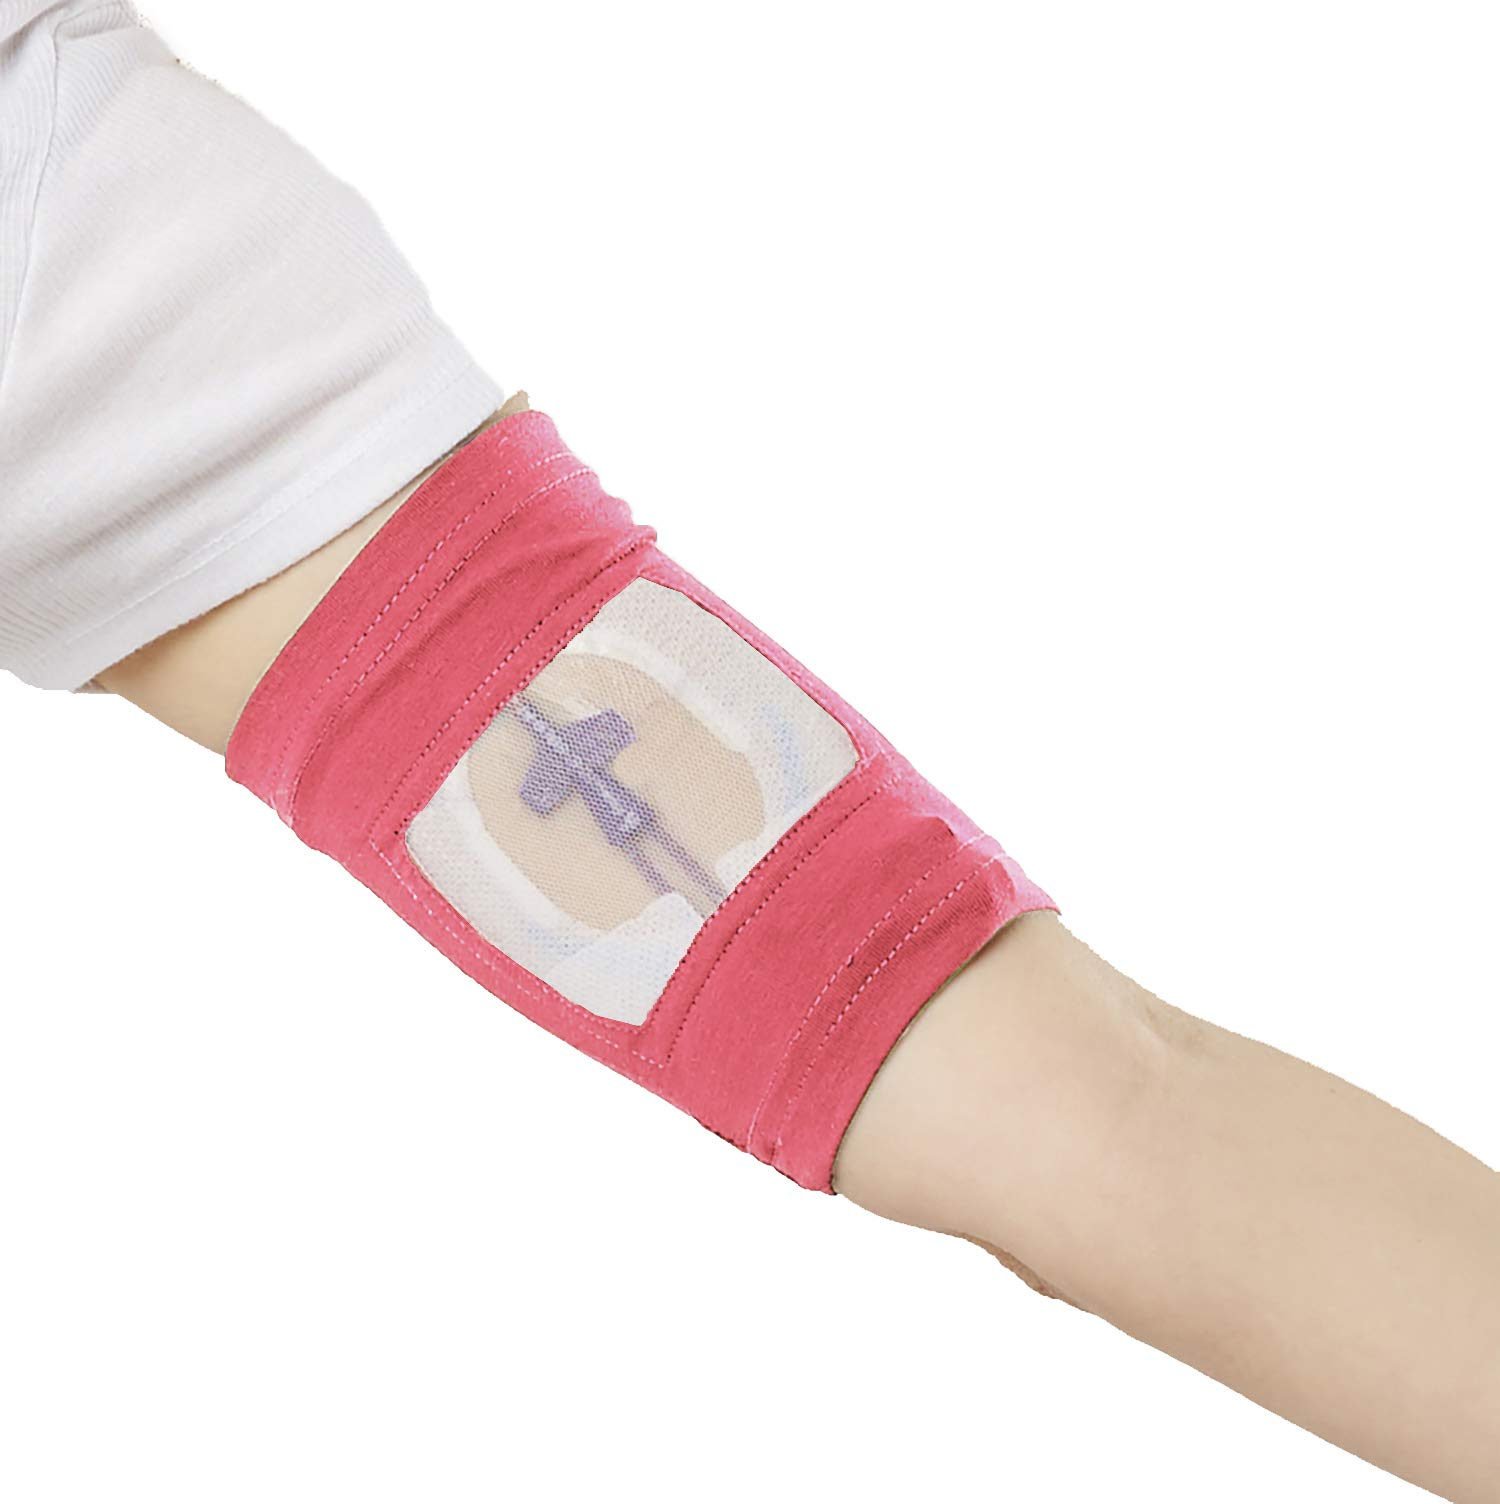 "Care+Wear Ultra-Soft Antimicrobial PICC Line Cover Fuchsia XL 17"" - 19"" Bicep"